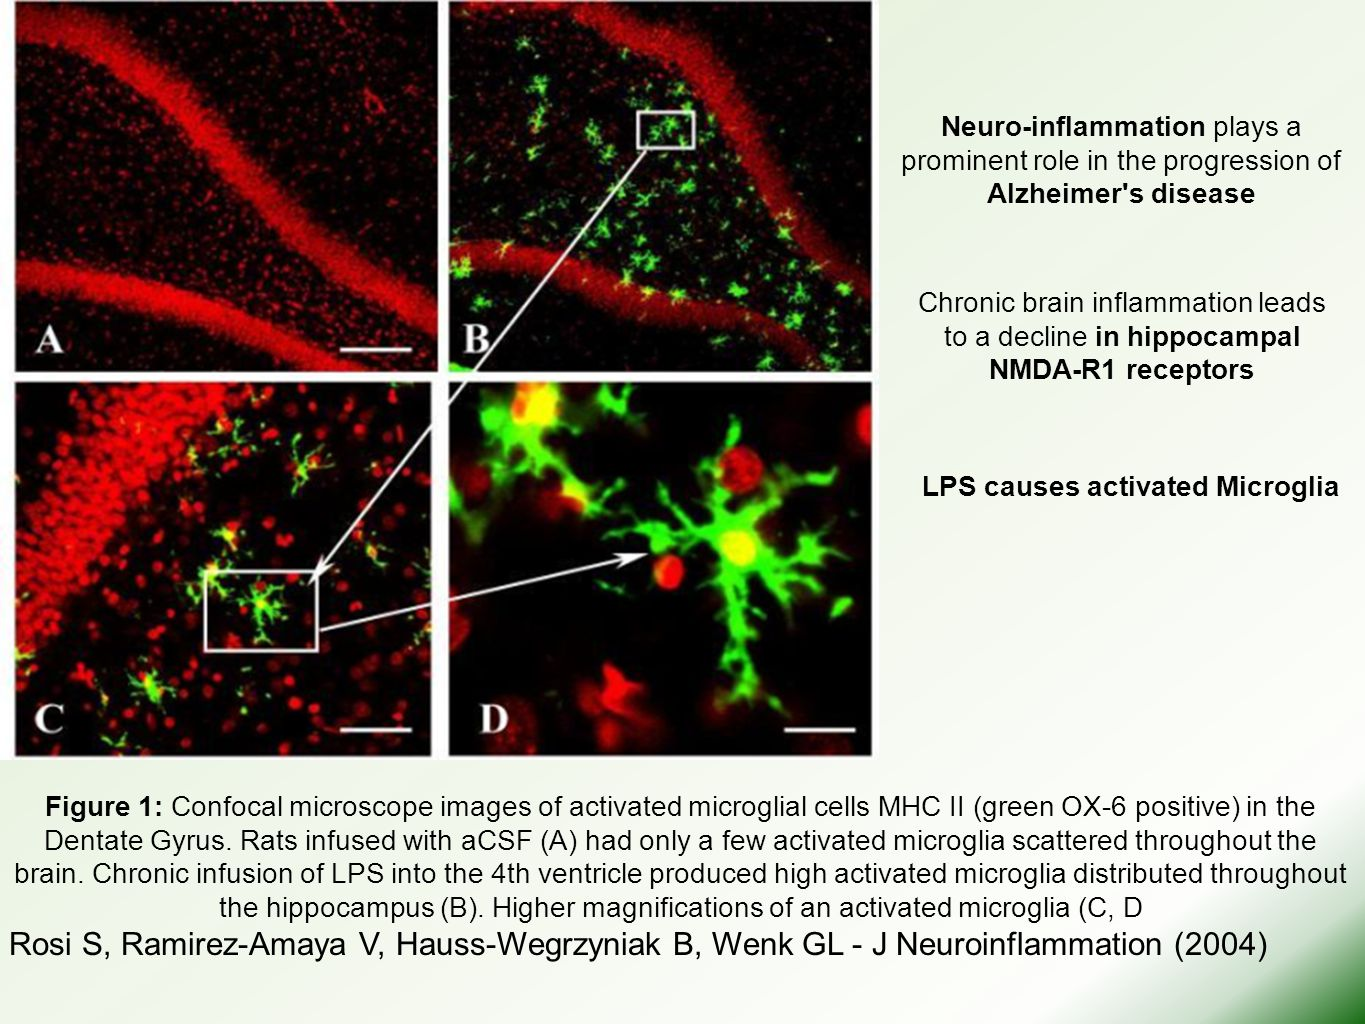 LPS causes activated Microglia